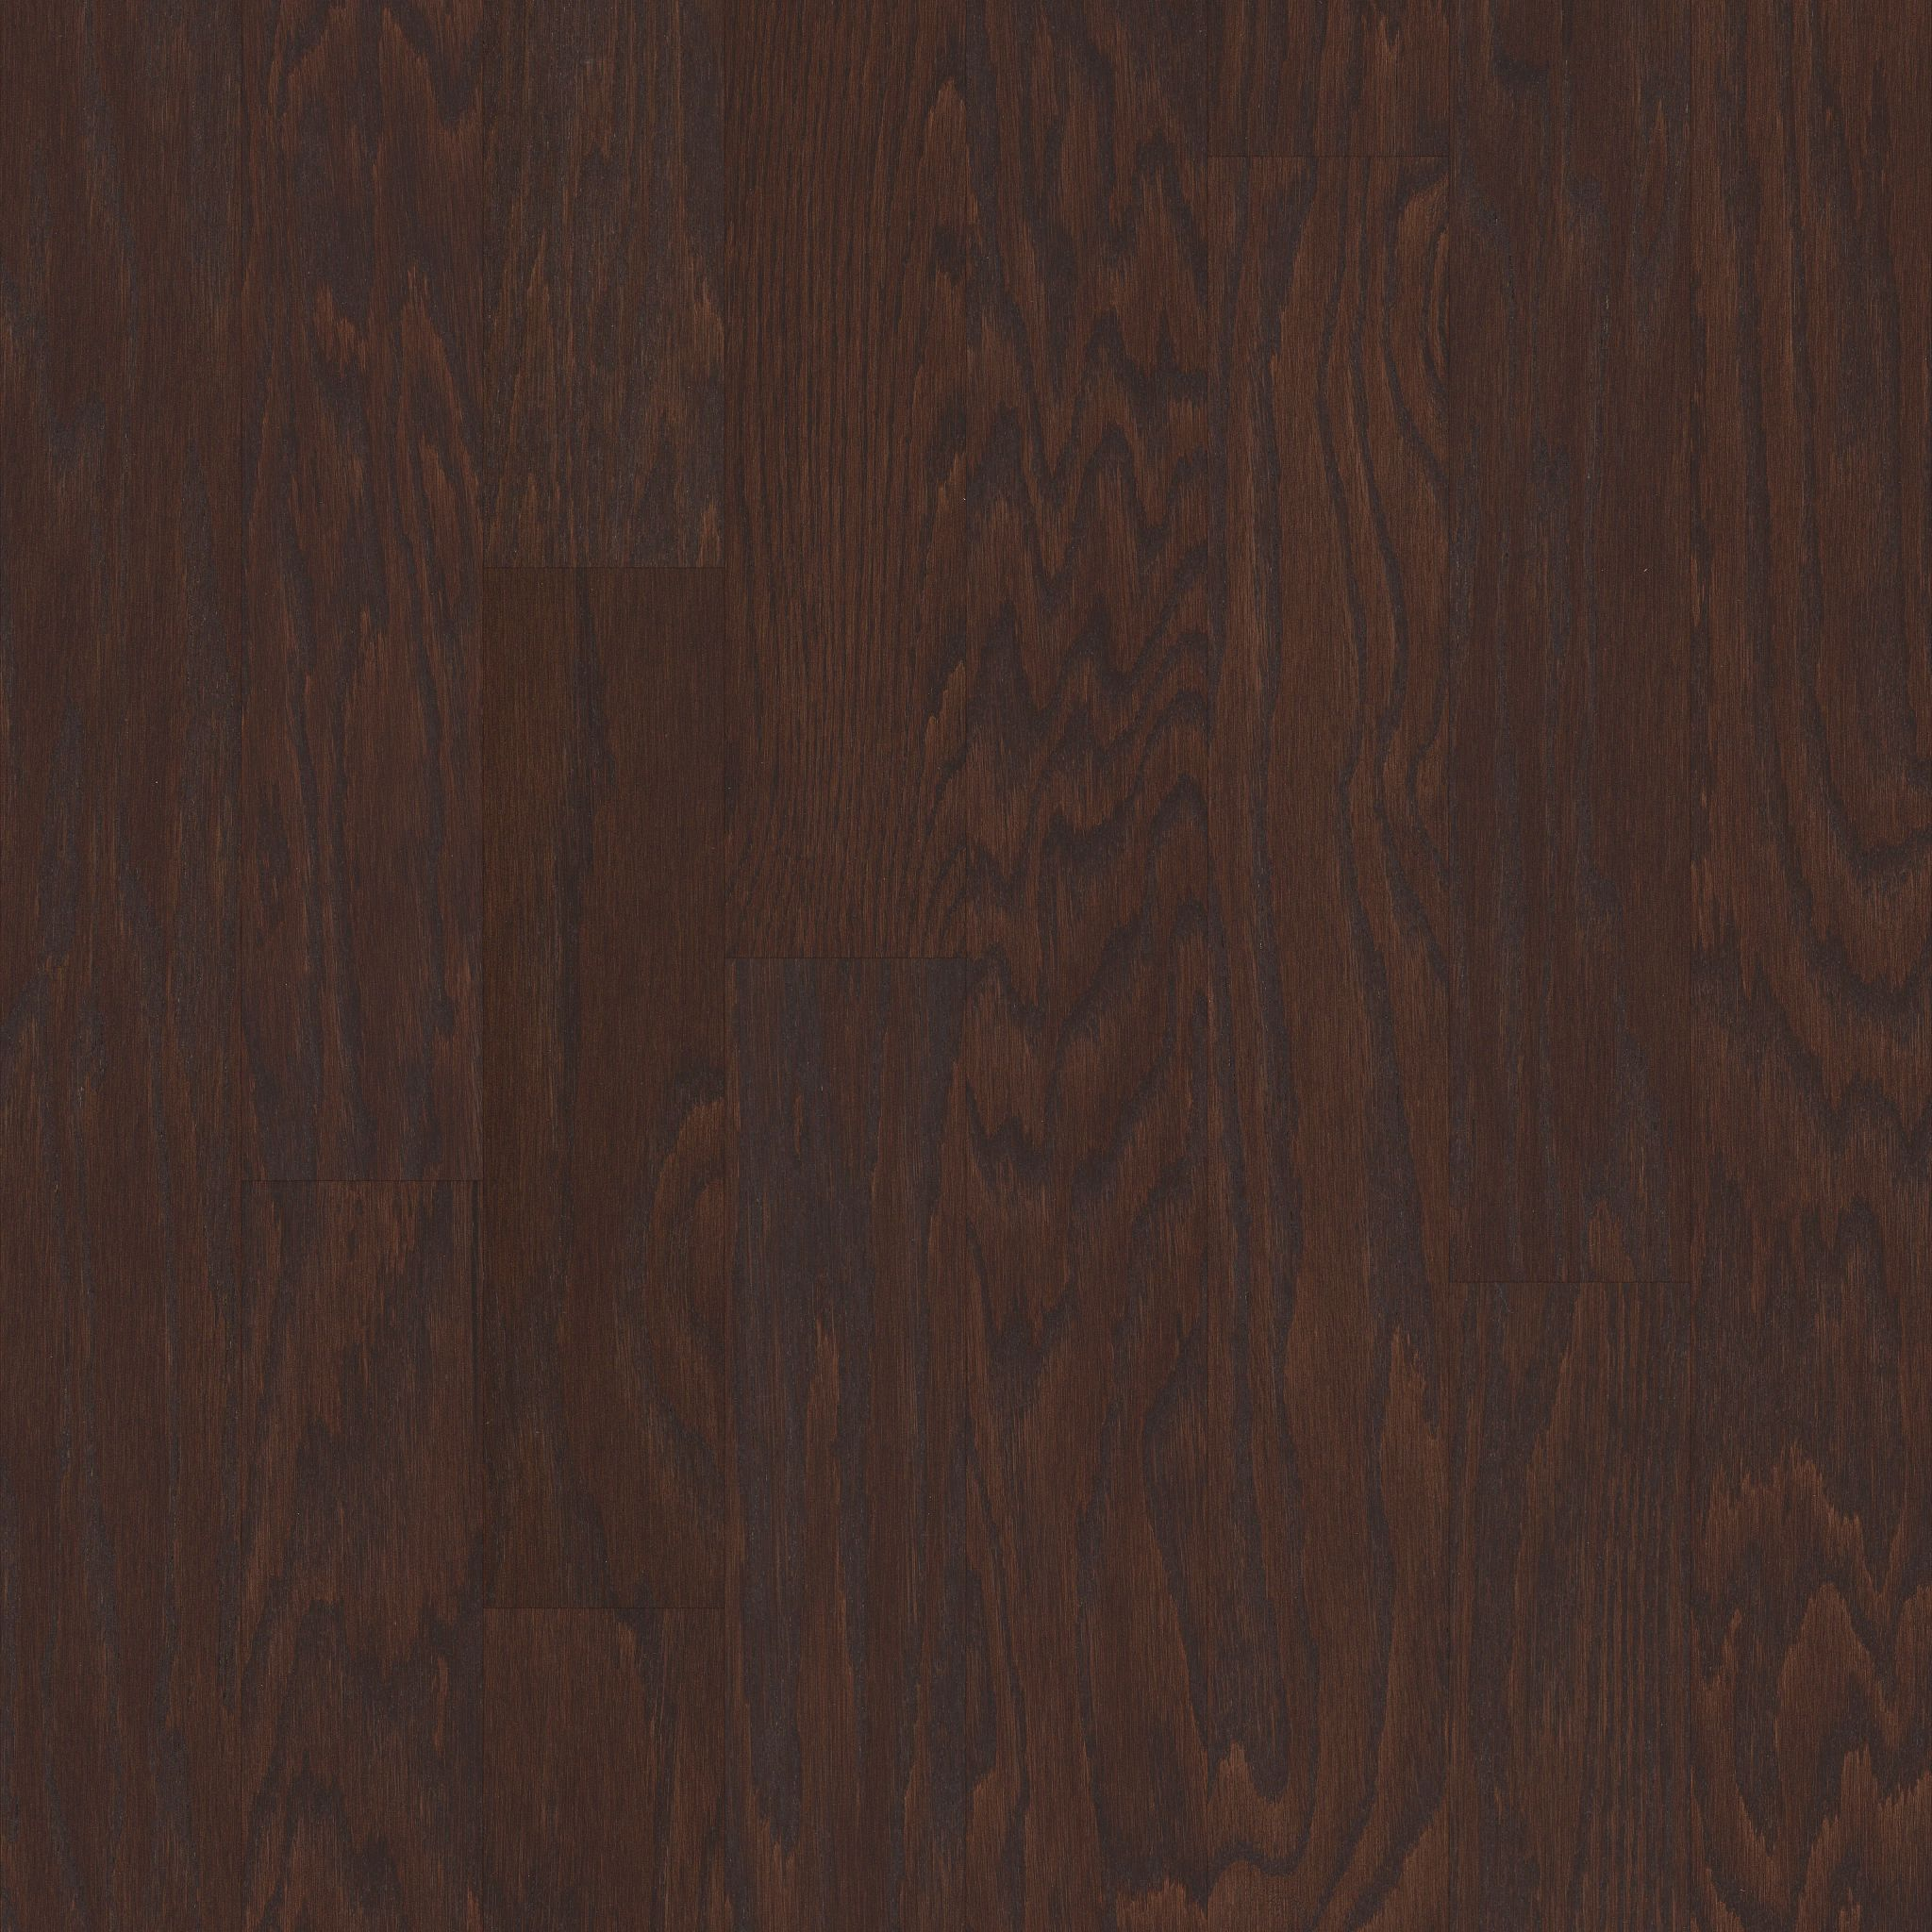 Style name and number: Albright Oak 3 1/4″ SW581 and color name and number: Coffee Bean 00938